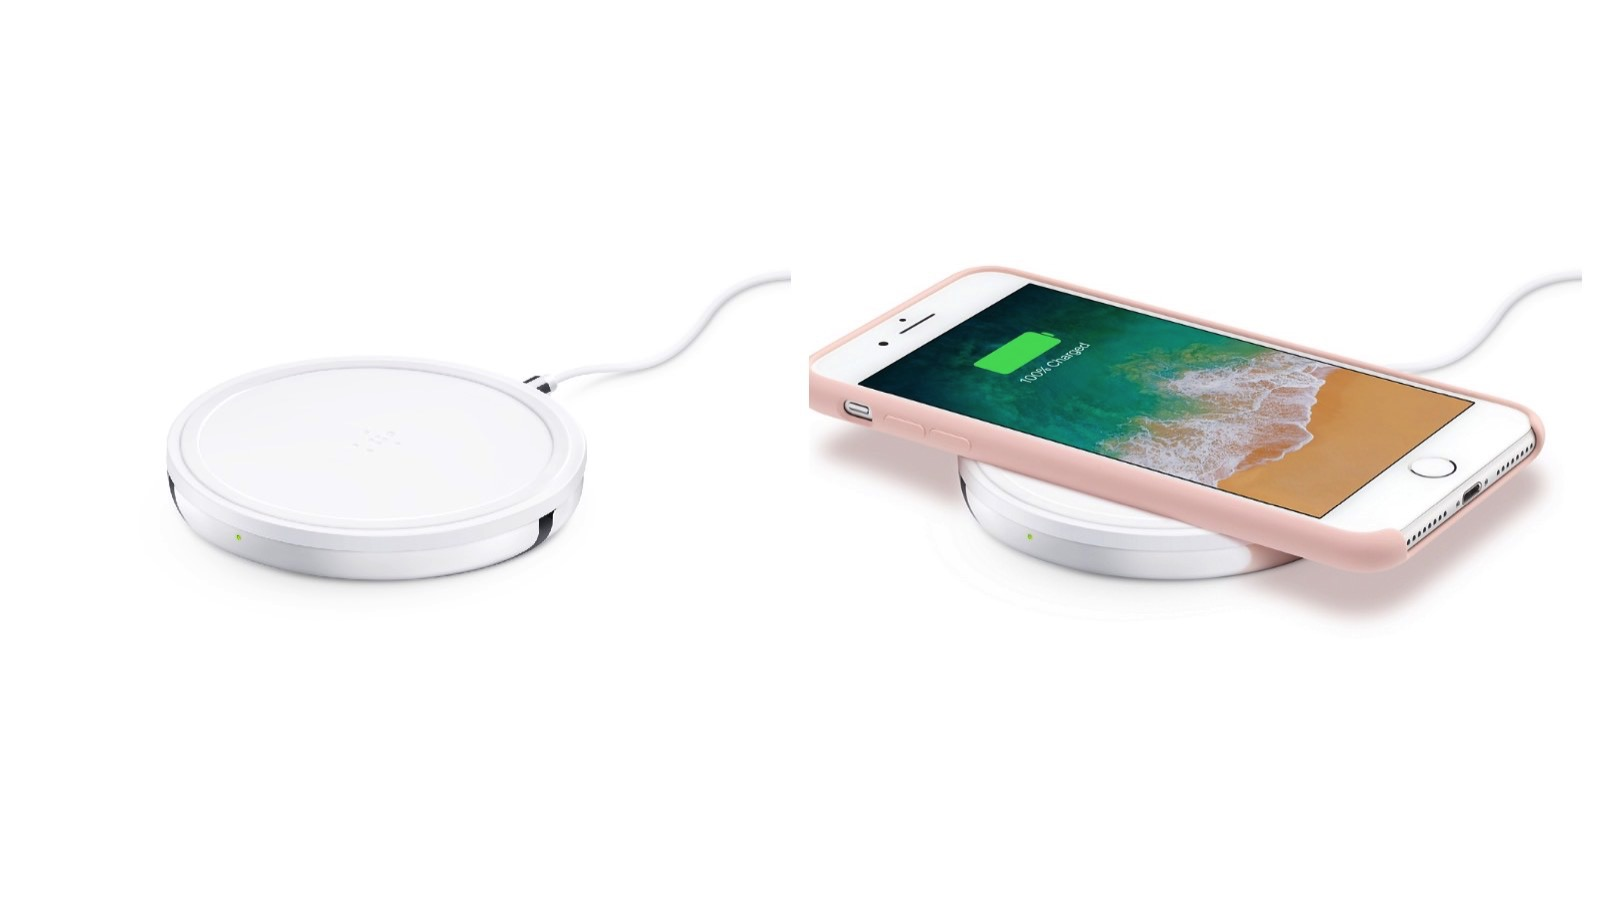 Belkin Boost Up Special Edition Wireless Charging Pad 2